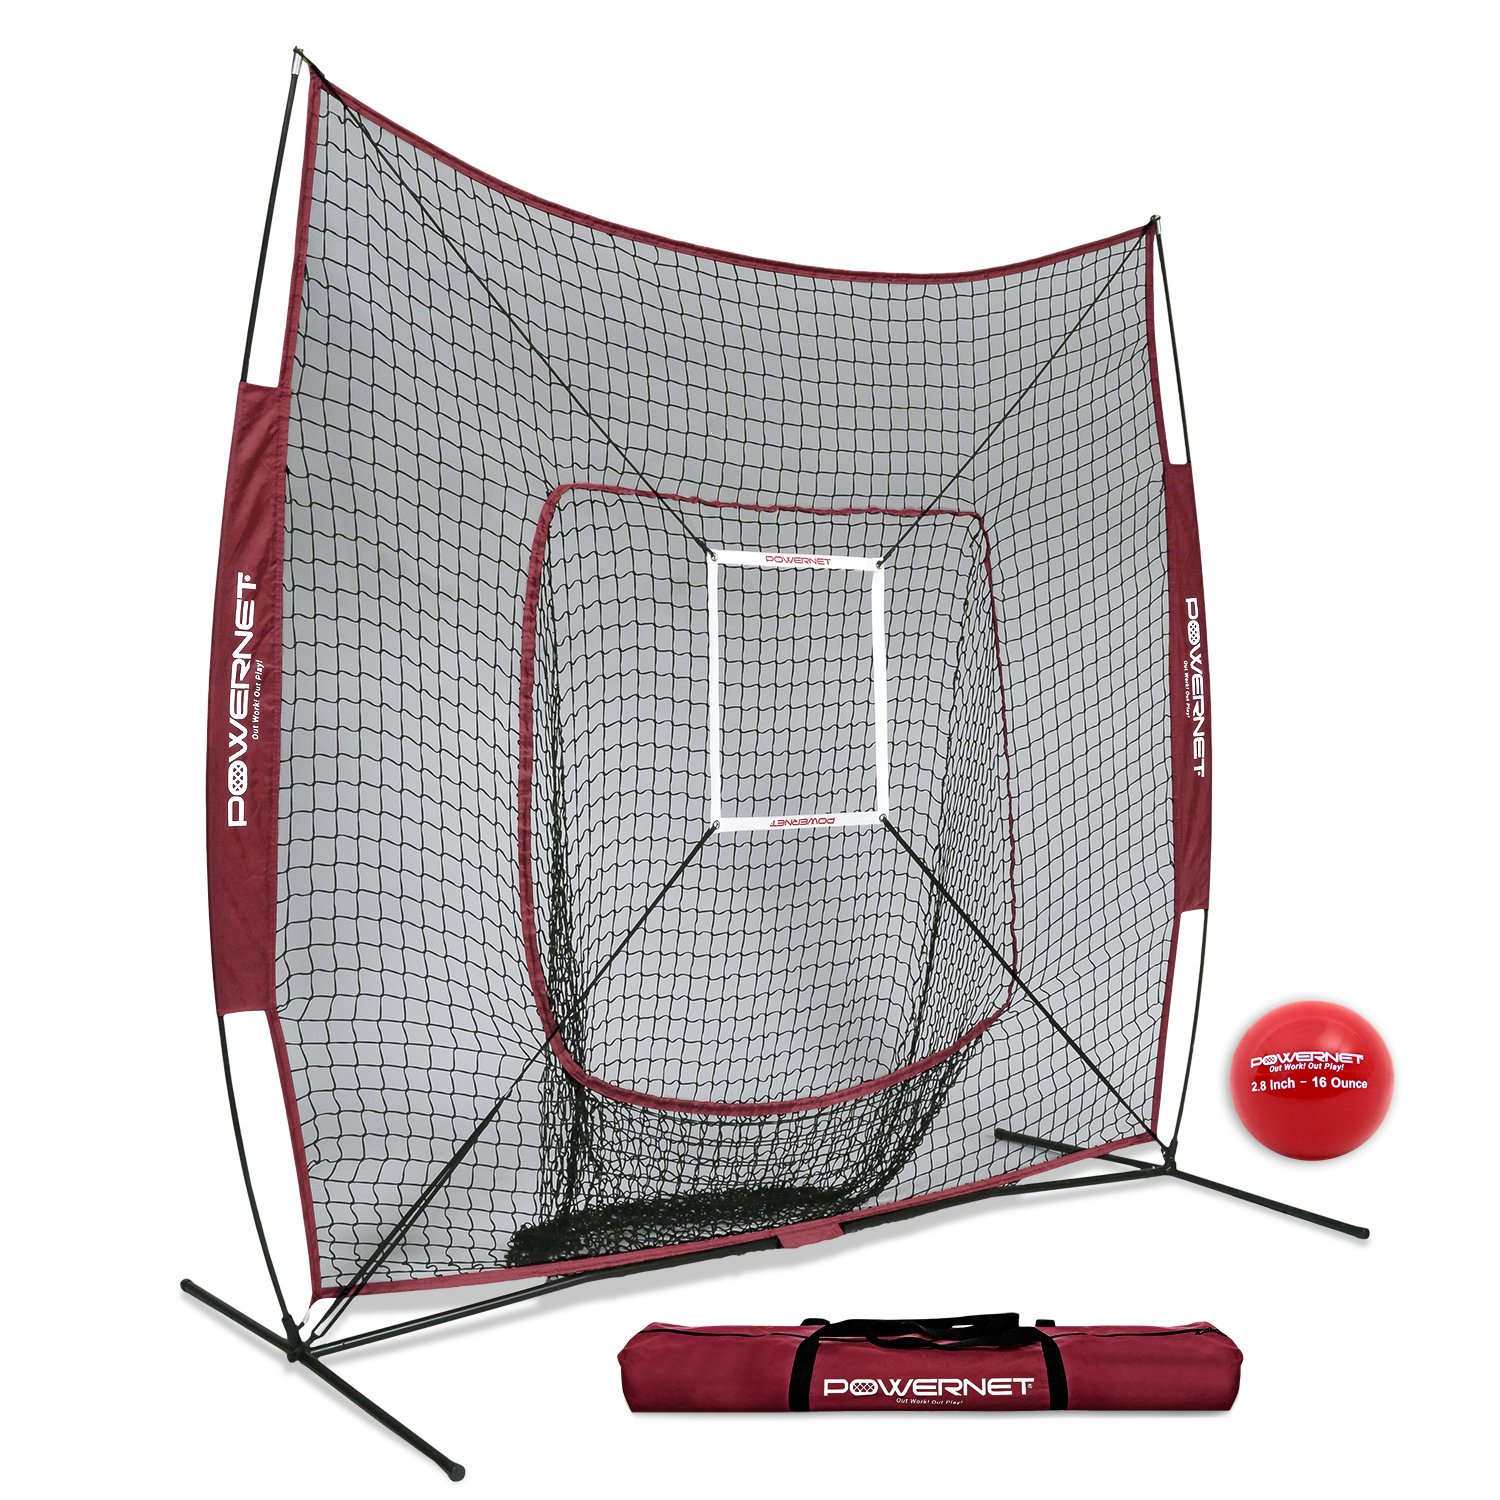 PowerNet DLX 7x7 Baseball Softball Hitting Net + Weighted Heavy Ball + Strike Zone Bundle (Maroon) | Training Set | Practice Equipment Batting Soft Toss Pitching | Team Color | Portable Backstop